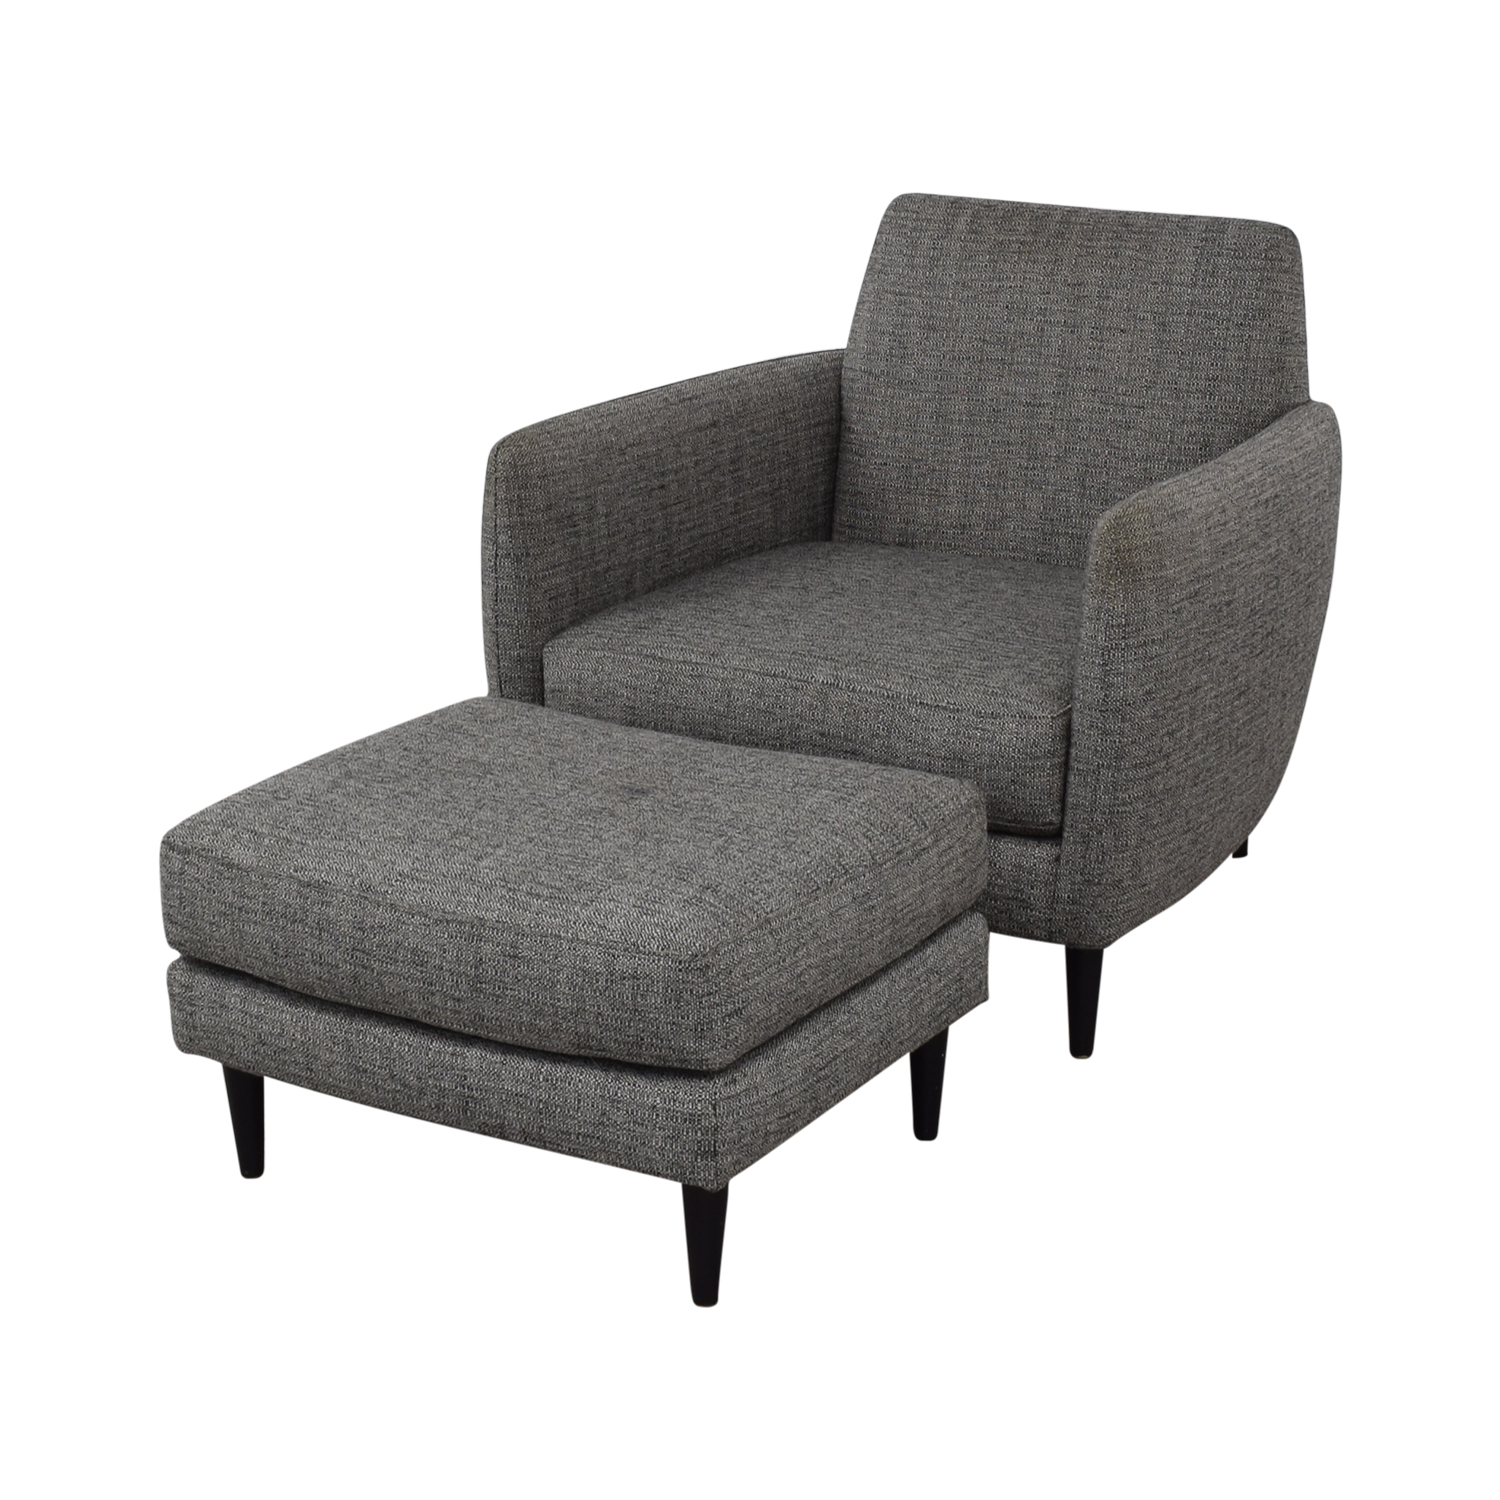 Grey Upholstered Chair 73 Off Cb2 Cb2 Grey Upholstered Parlour Chair And